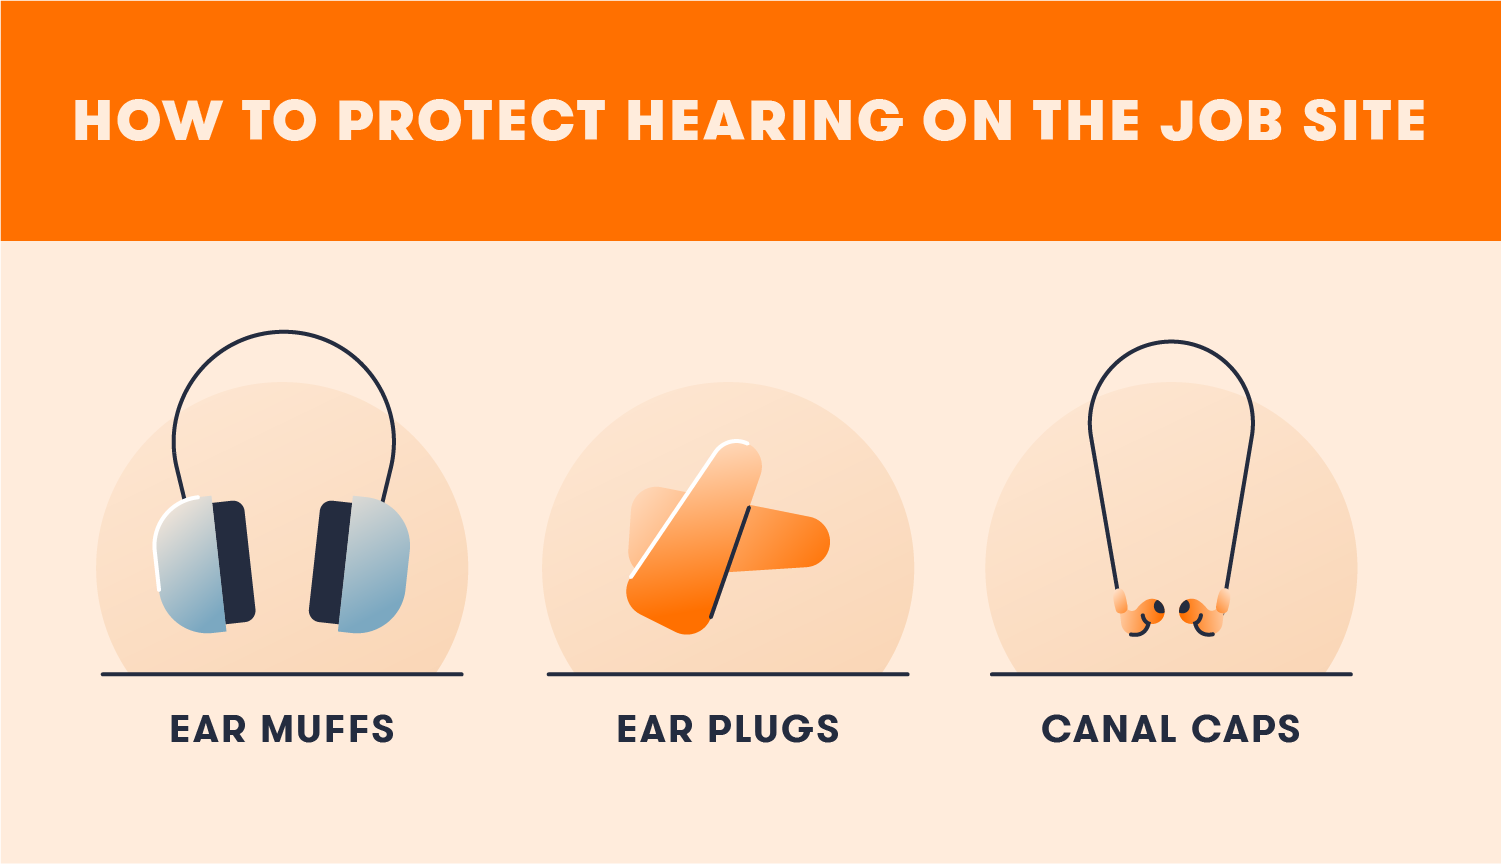 Ear muffs, ear plugs and canal caps help to protect hearing on the job.